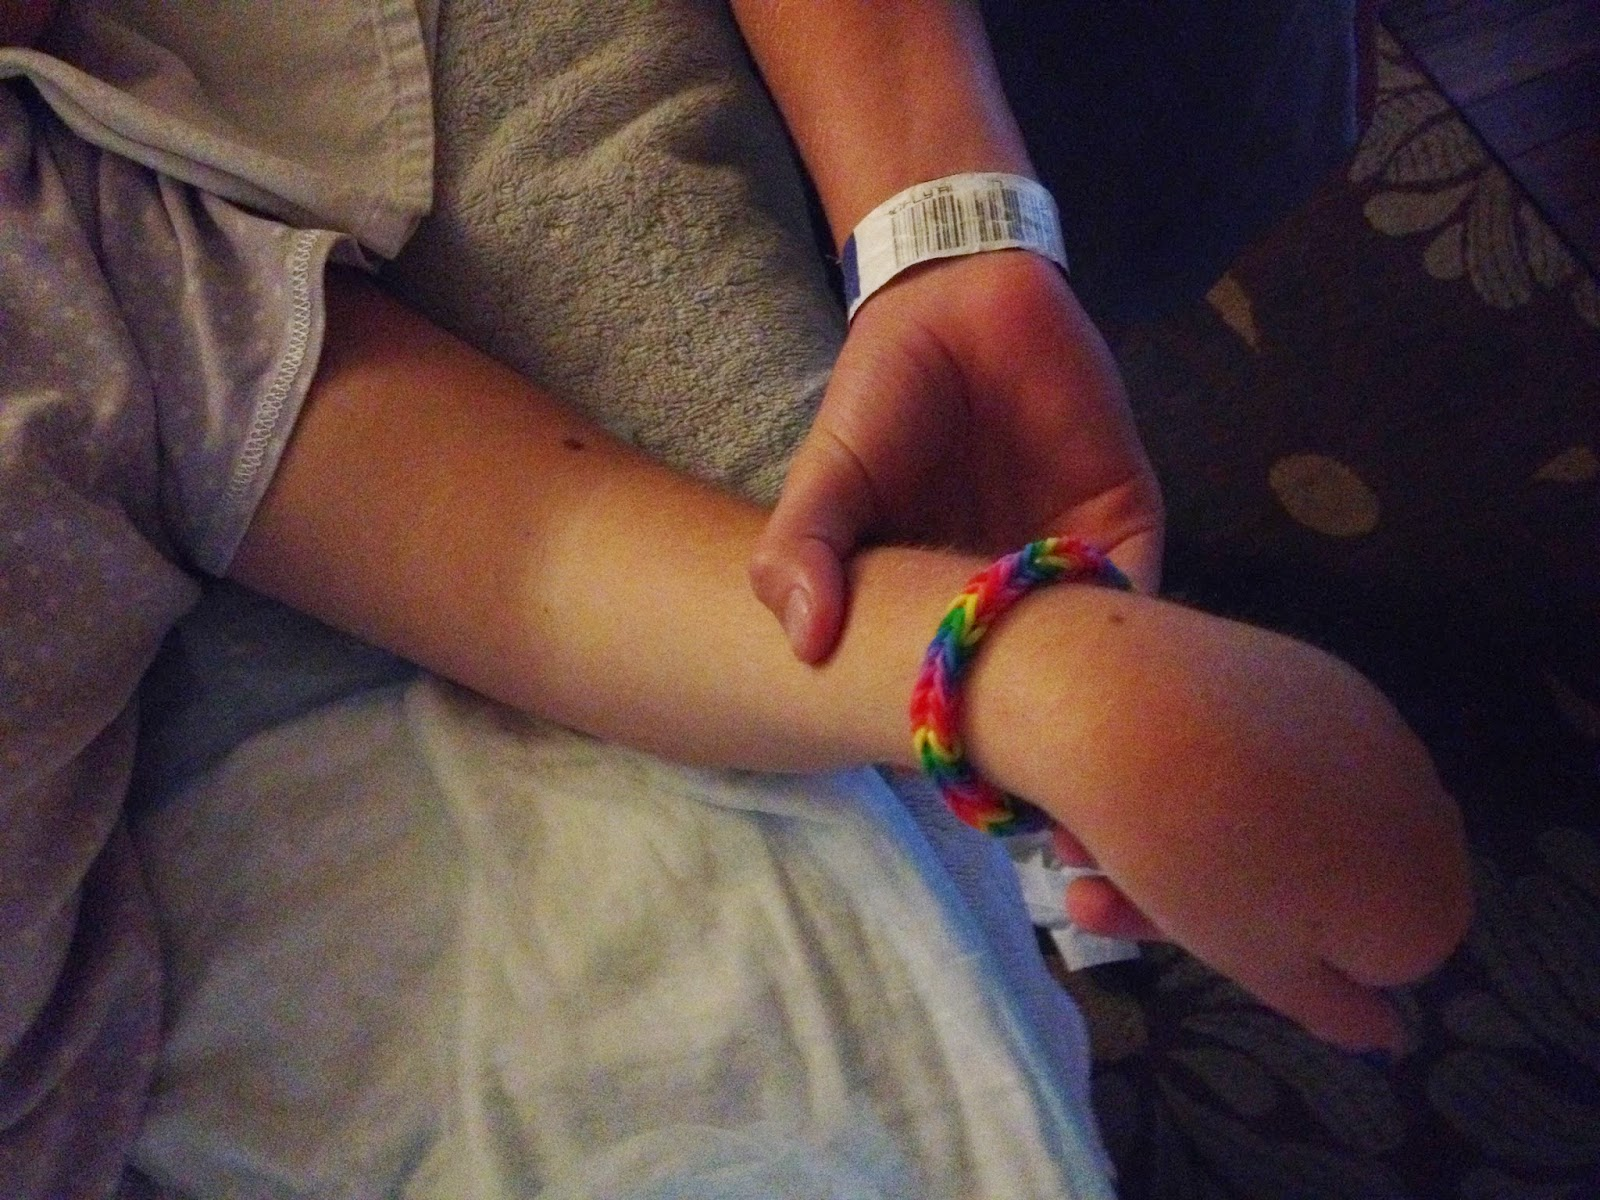 Ruby showing off the handmade bracelet she made for her sister as a gift.